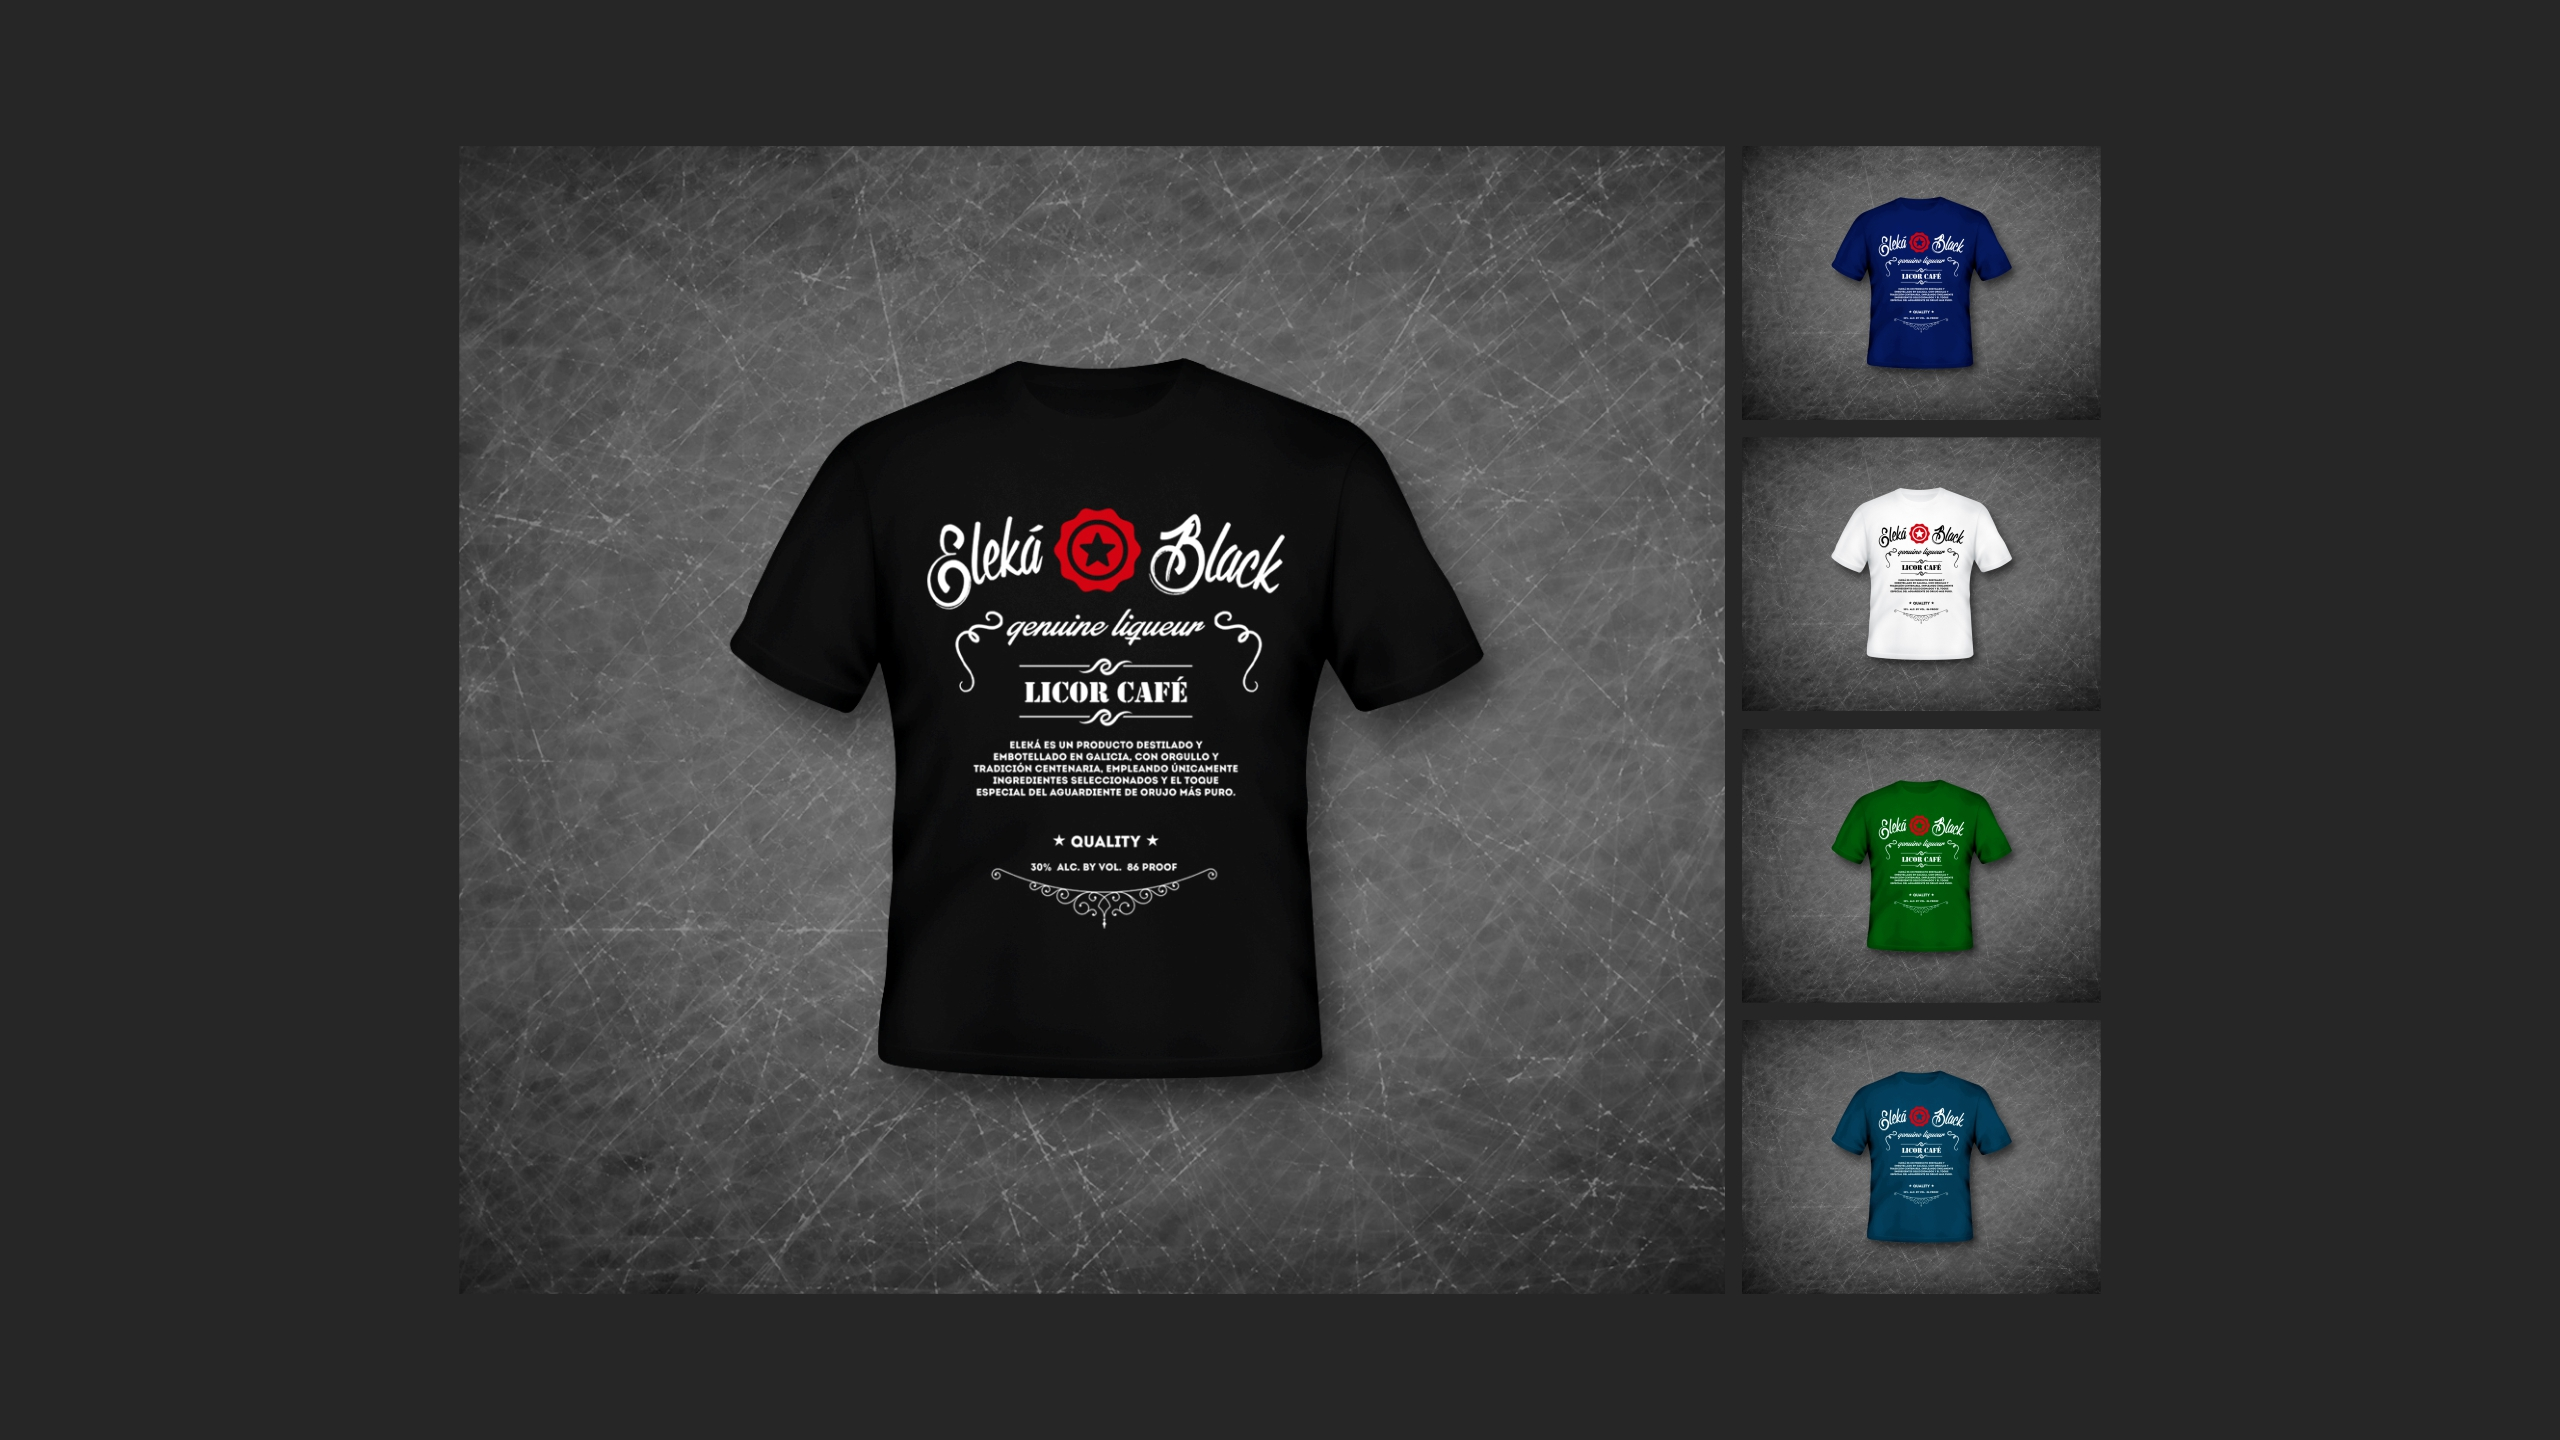 Diseño Eleka licor cafe merchandising t shirts